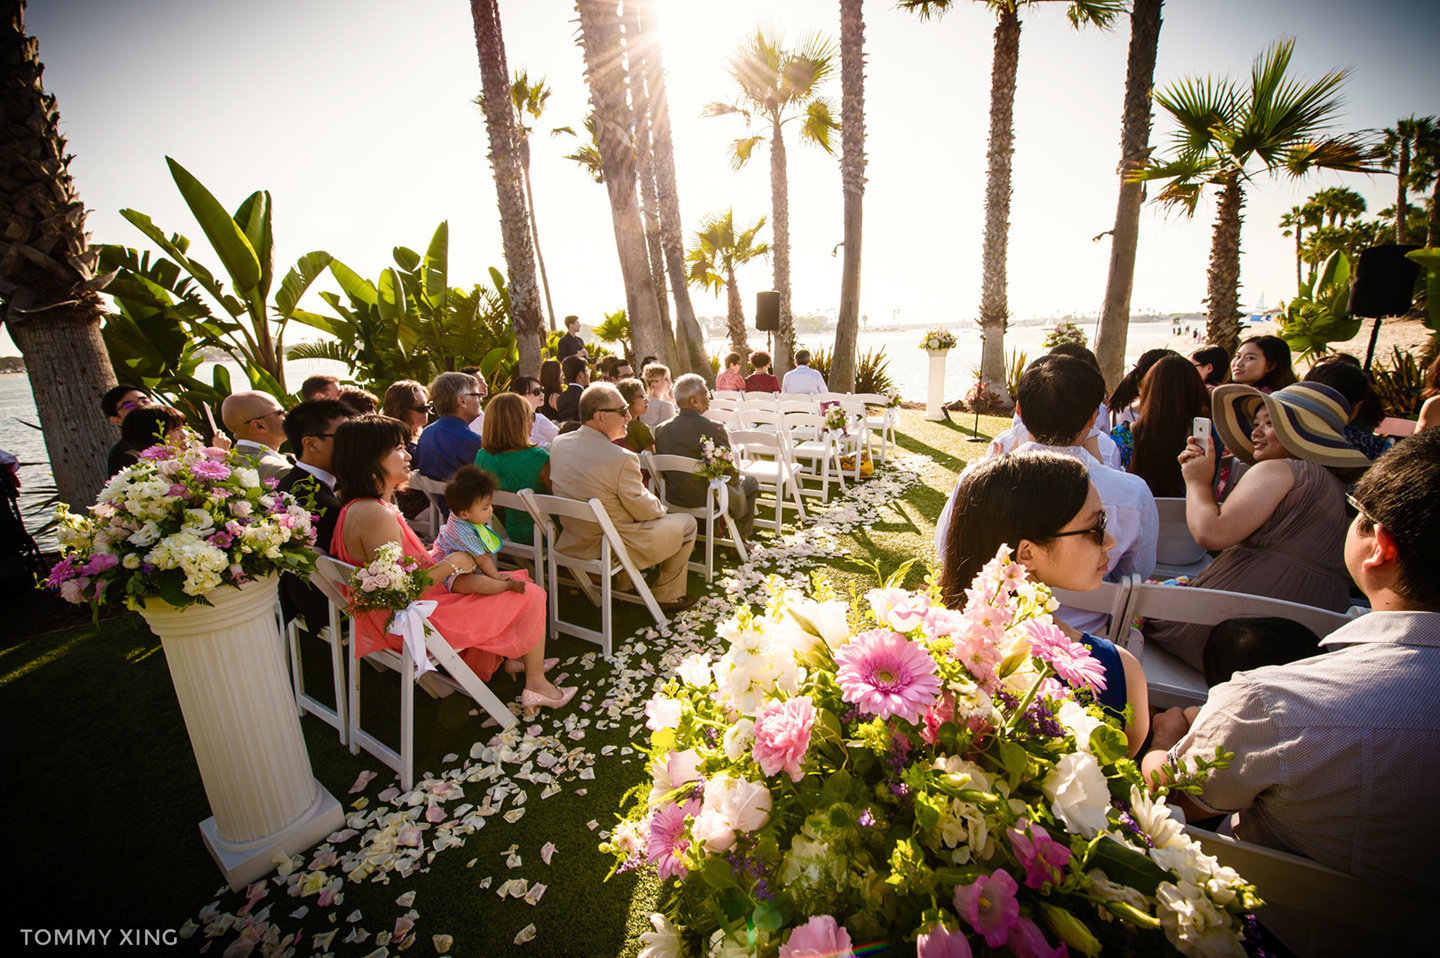 Paradise Point Resort Wedding Xiaolu & Bin San Diego 圣地亚哥婚礼摄影跟拍 Tommy Xing Photography 洛杉矶婚礼婚纱照摄影师 081.jpg